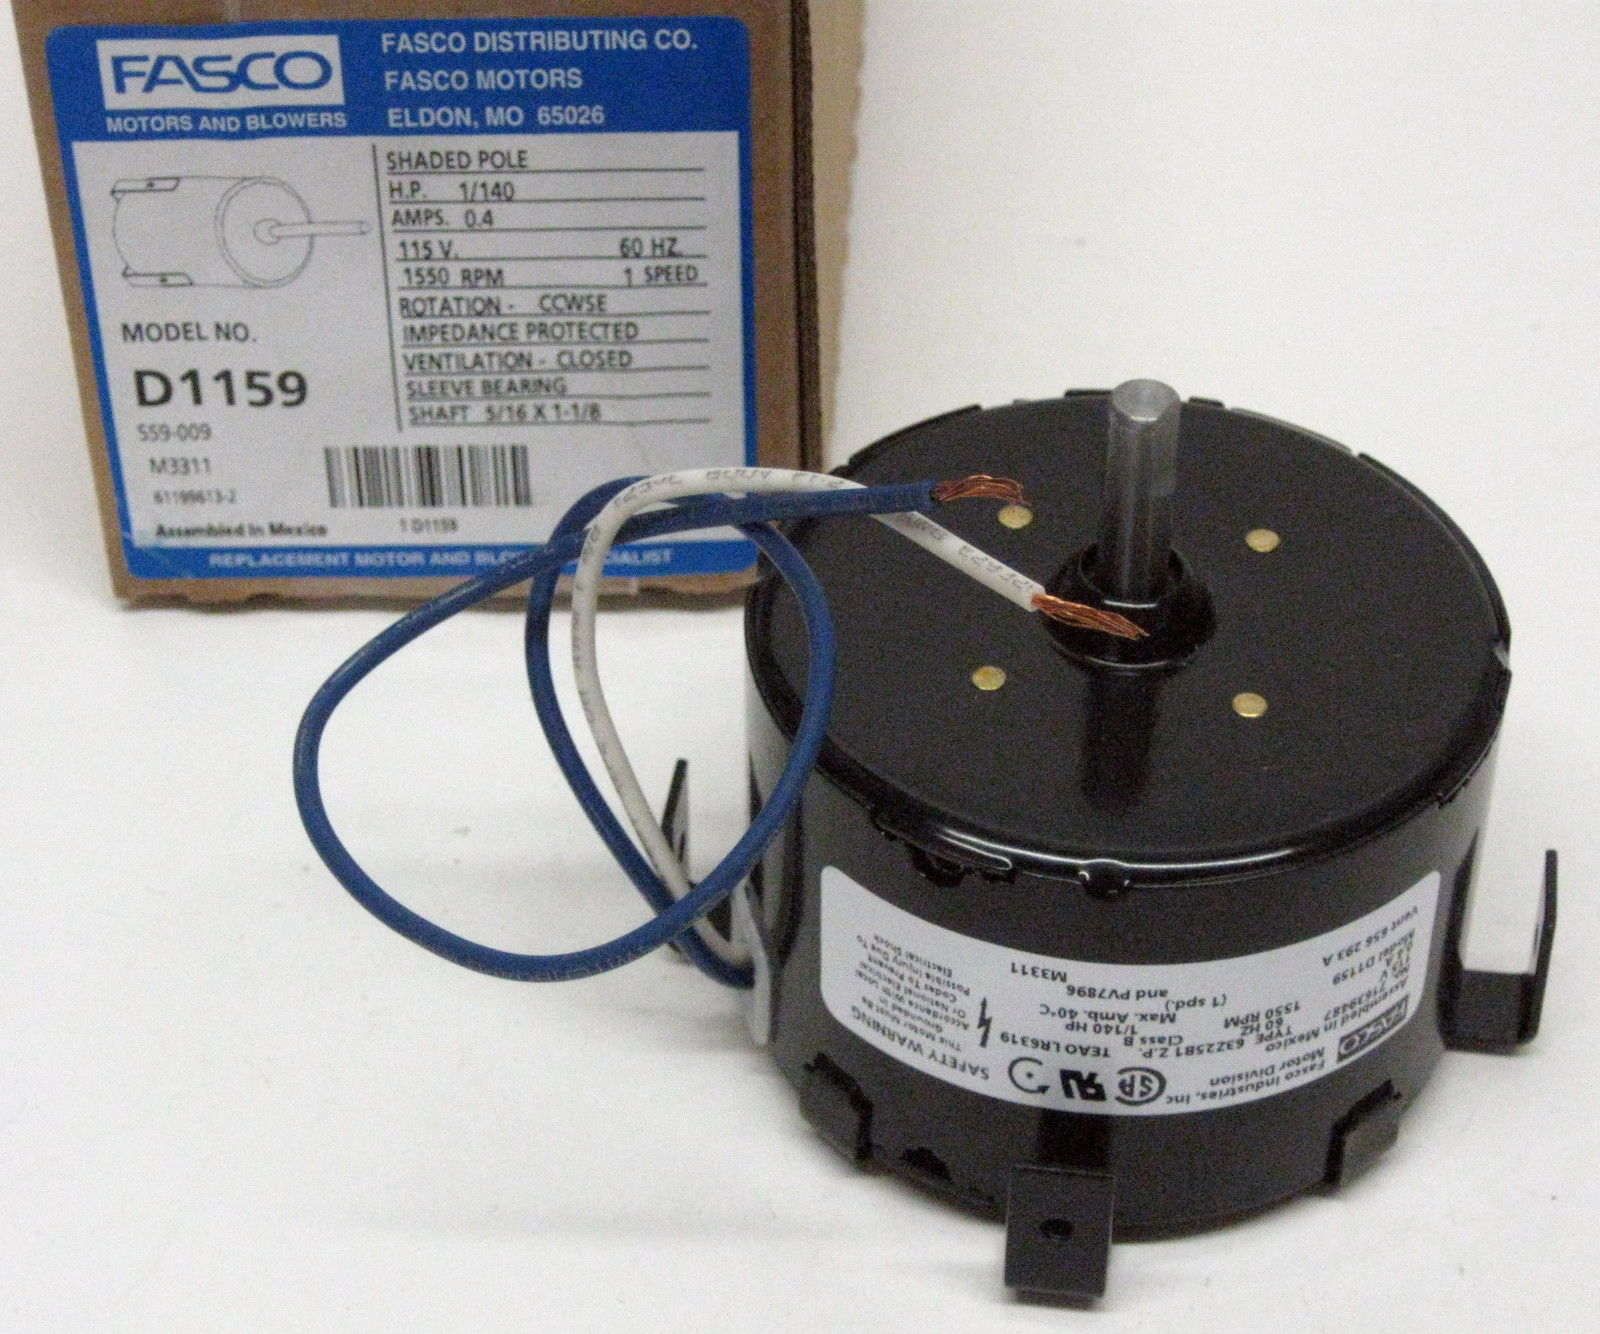 Fasco Fan Motor Wiring - Wiring Schematics on